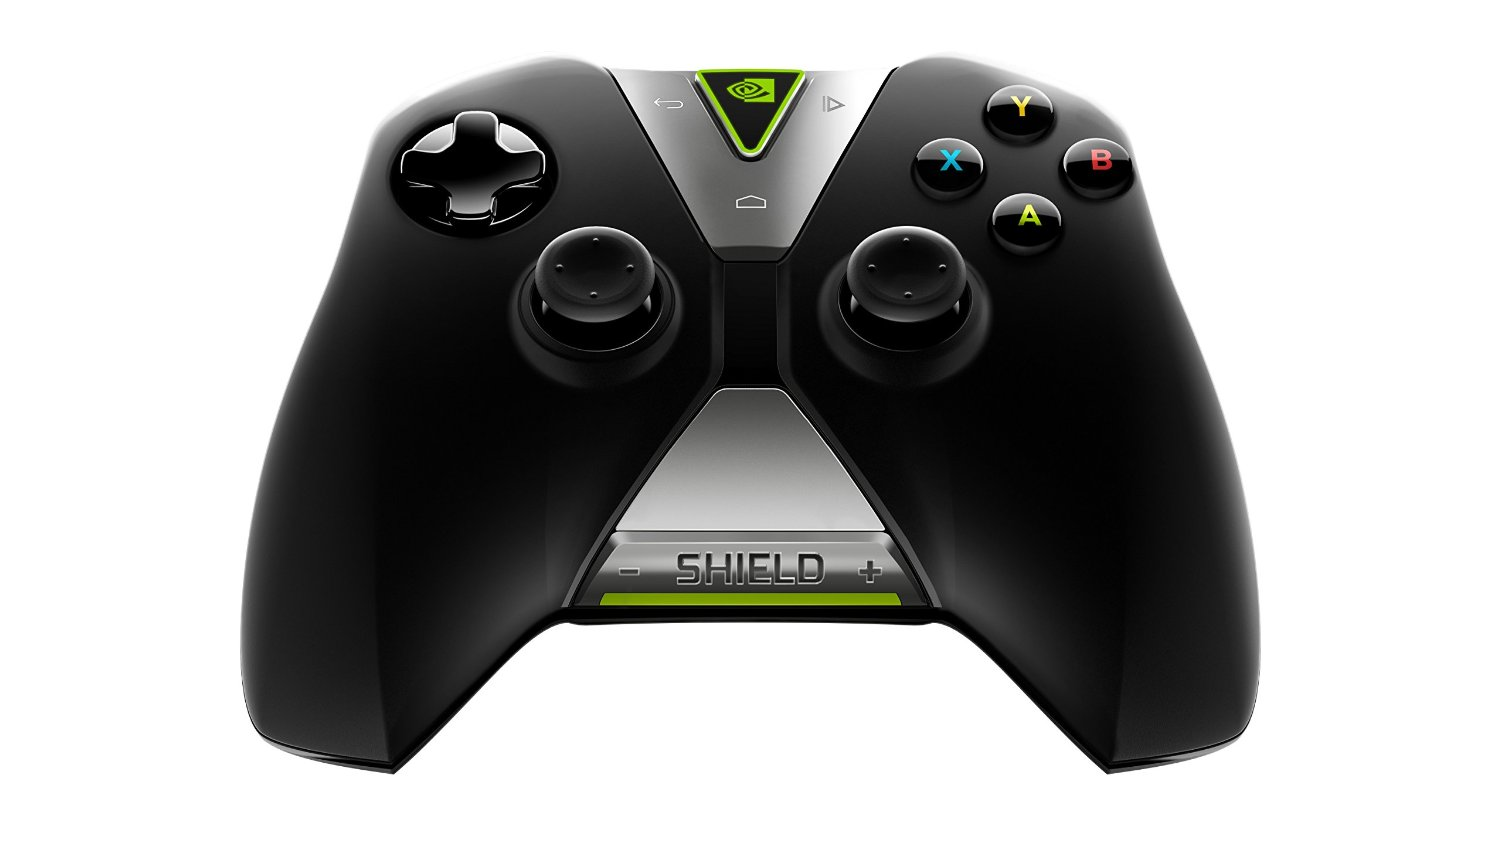 Nvidia-khiên-Wireless-Controller-Shield